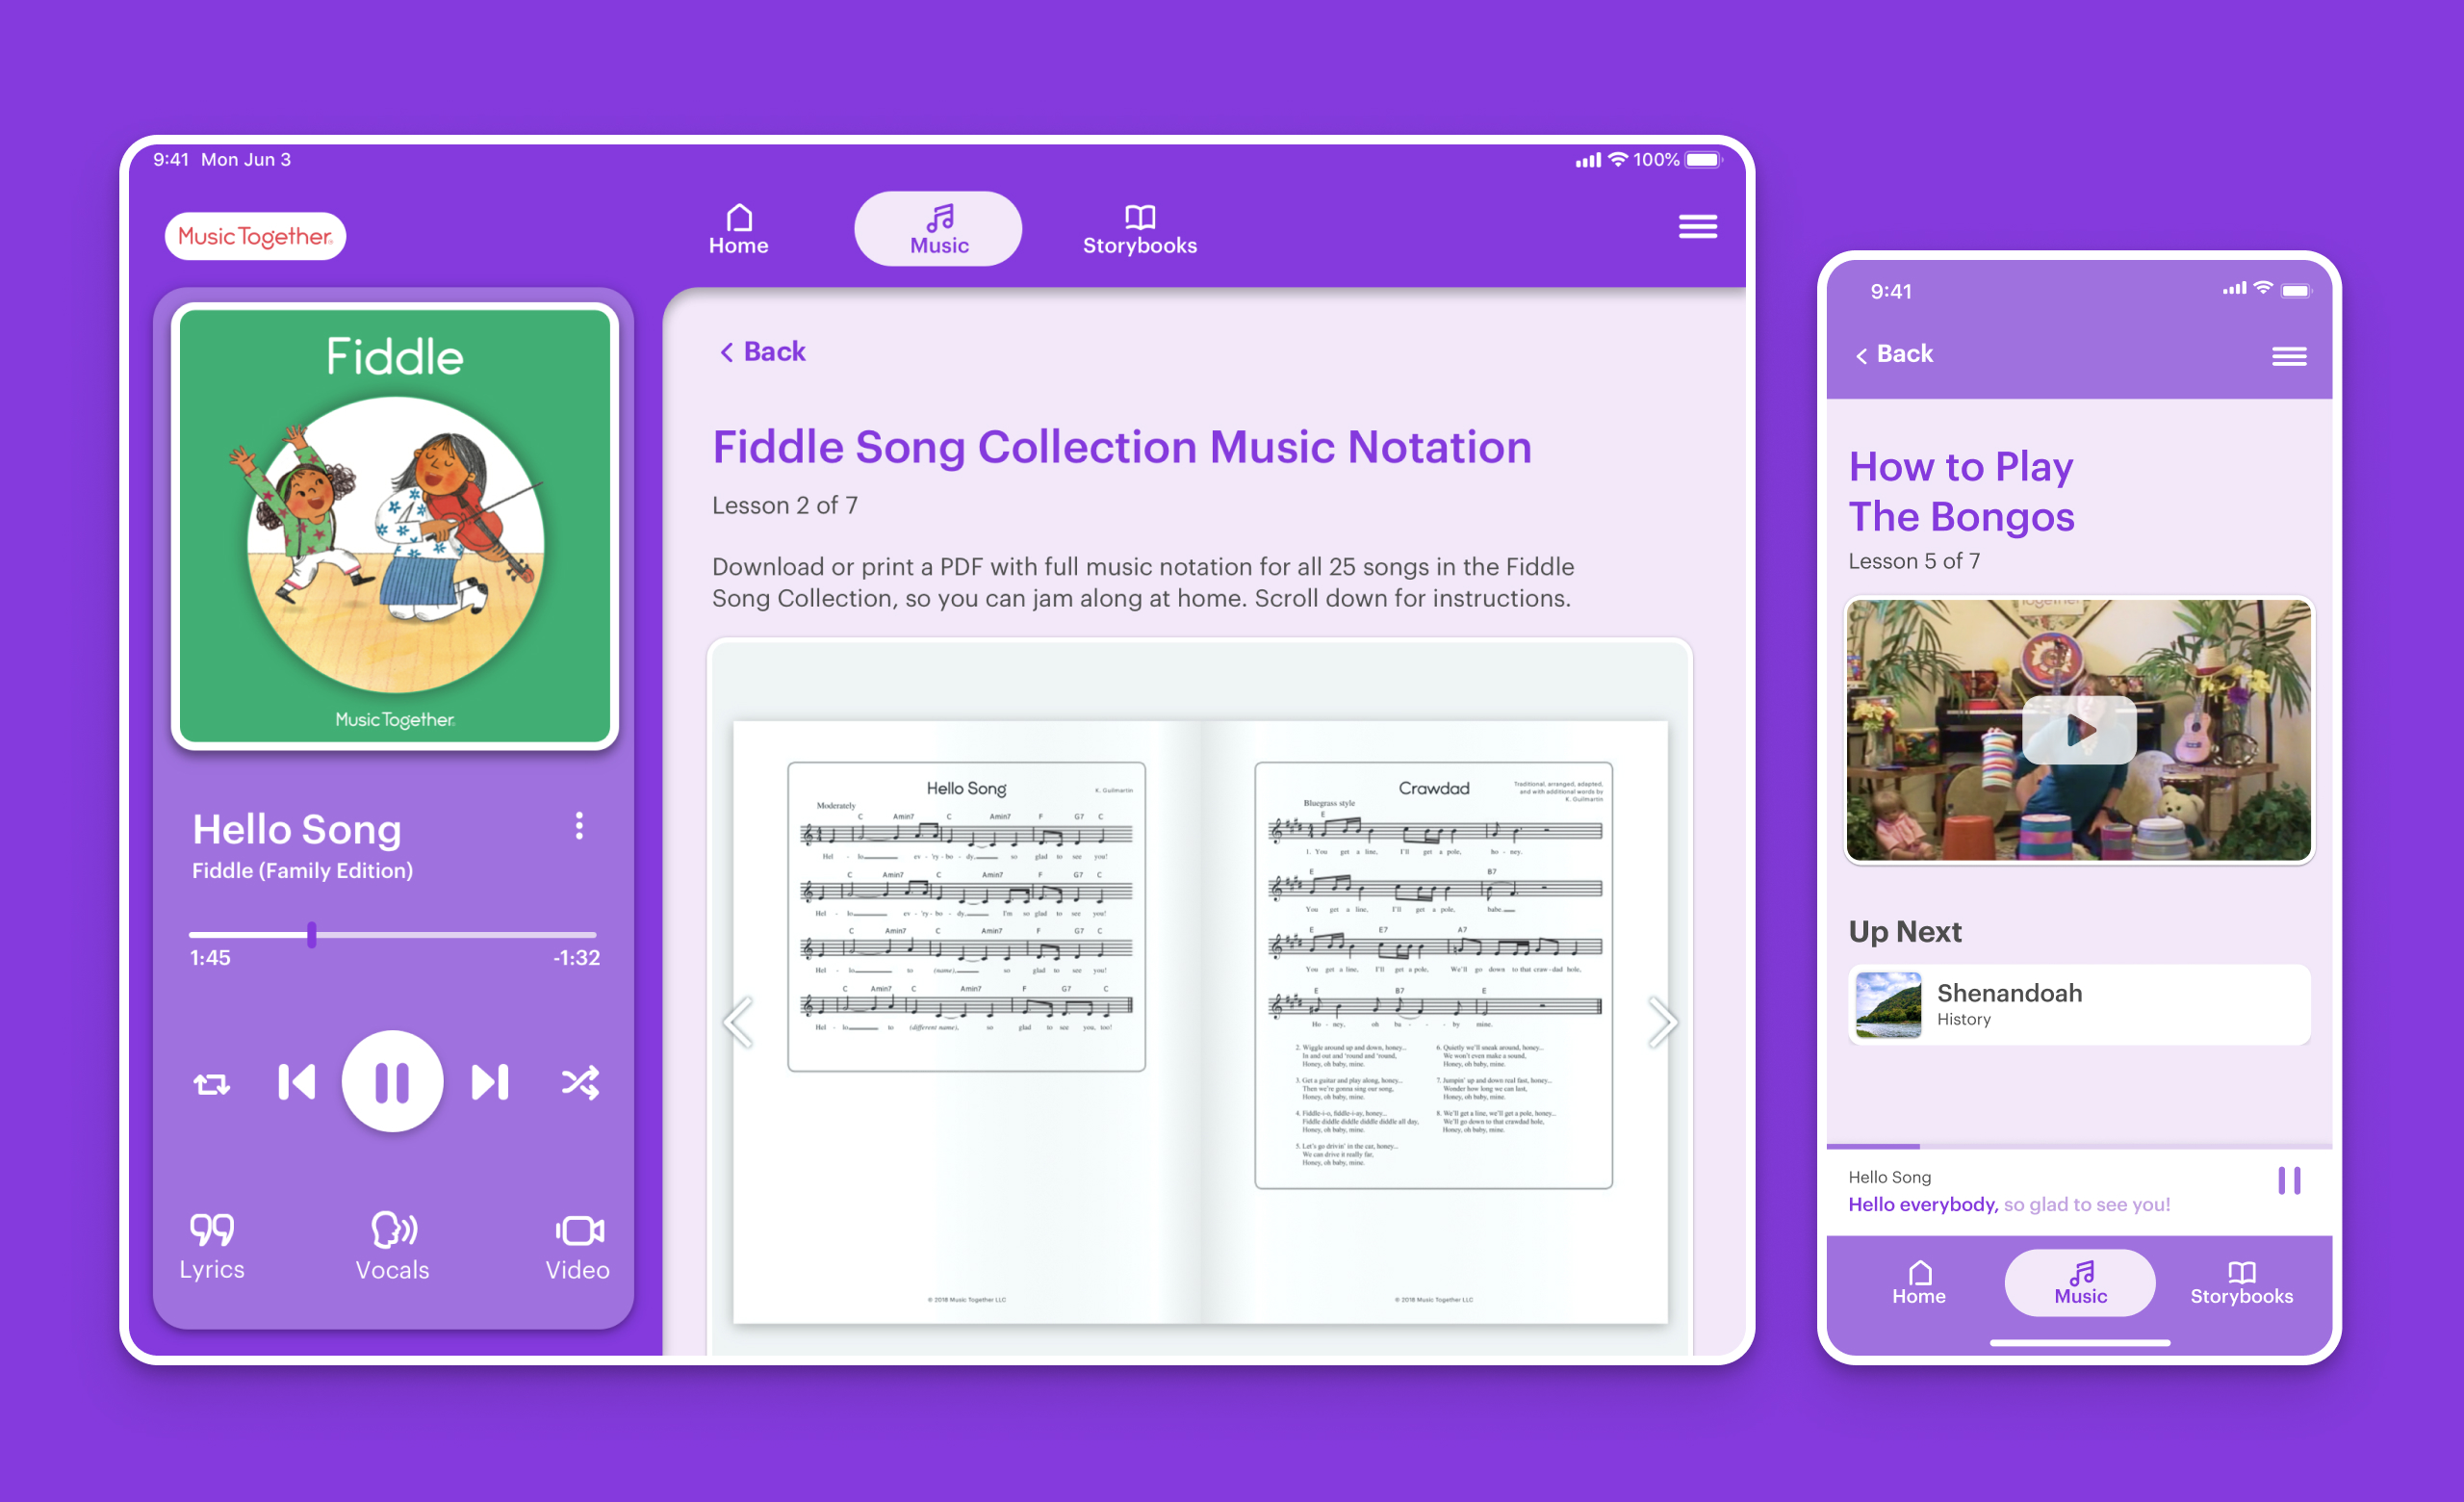 The app's music education section of the app on iPhone and iPad